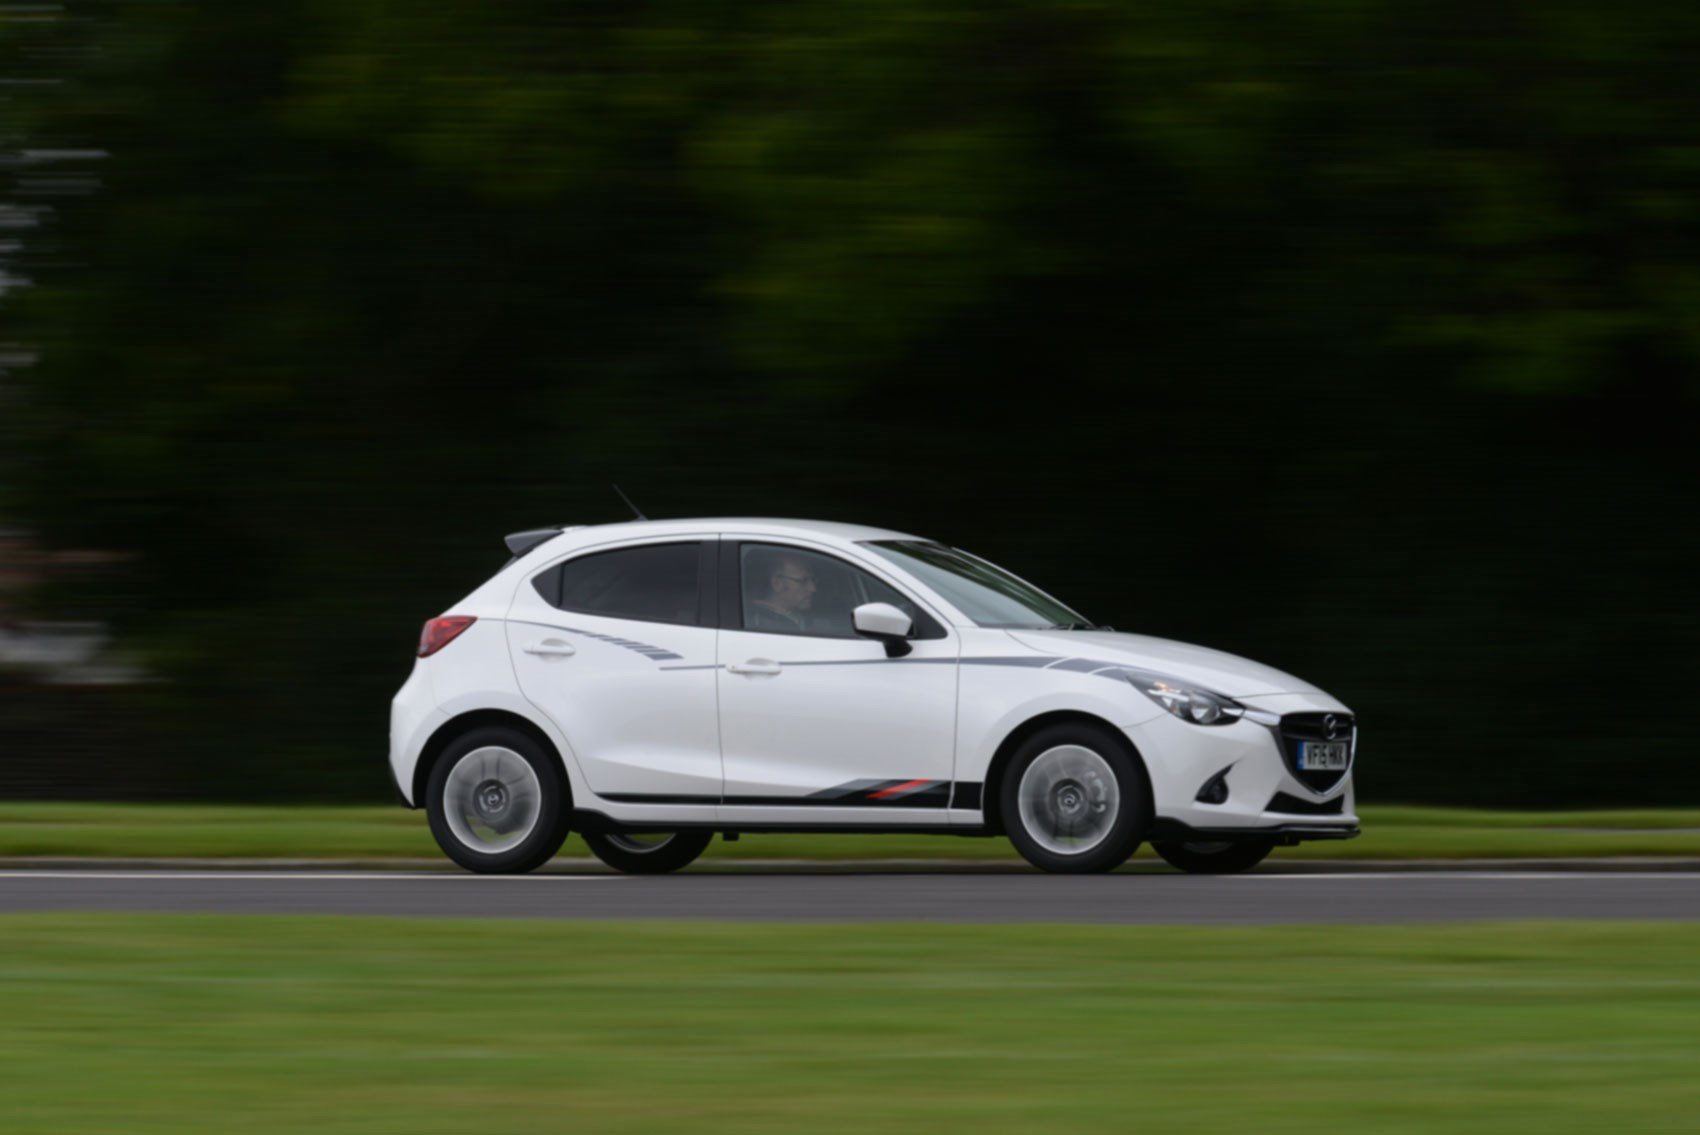 Five doors only for the mazda 2